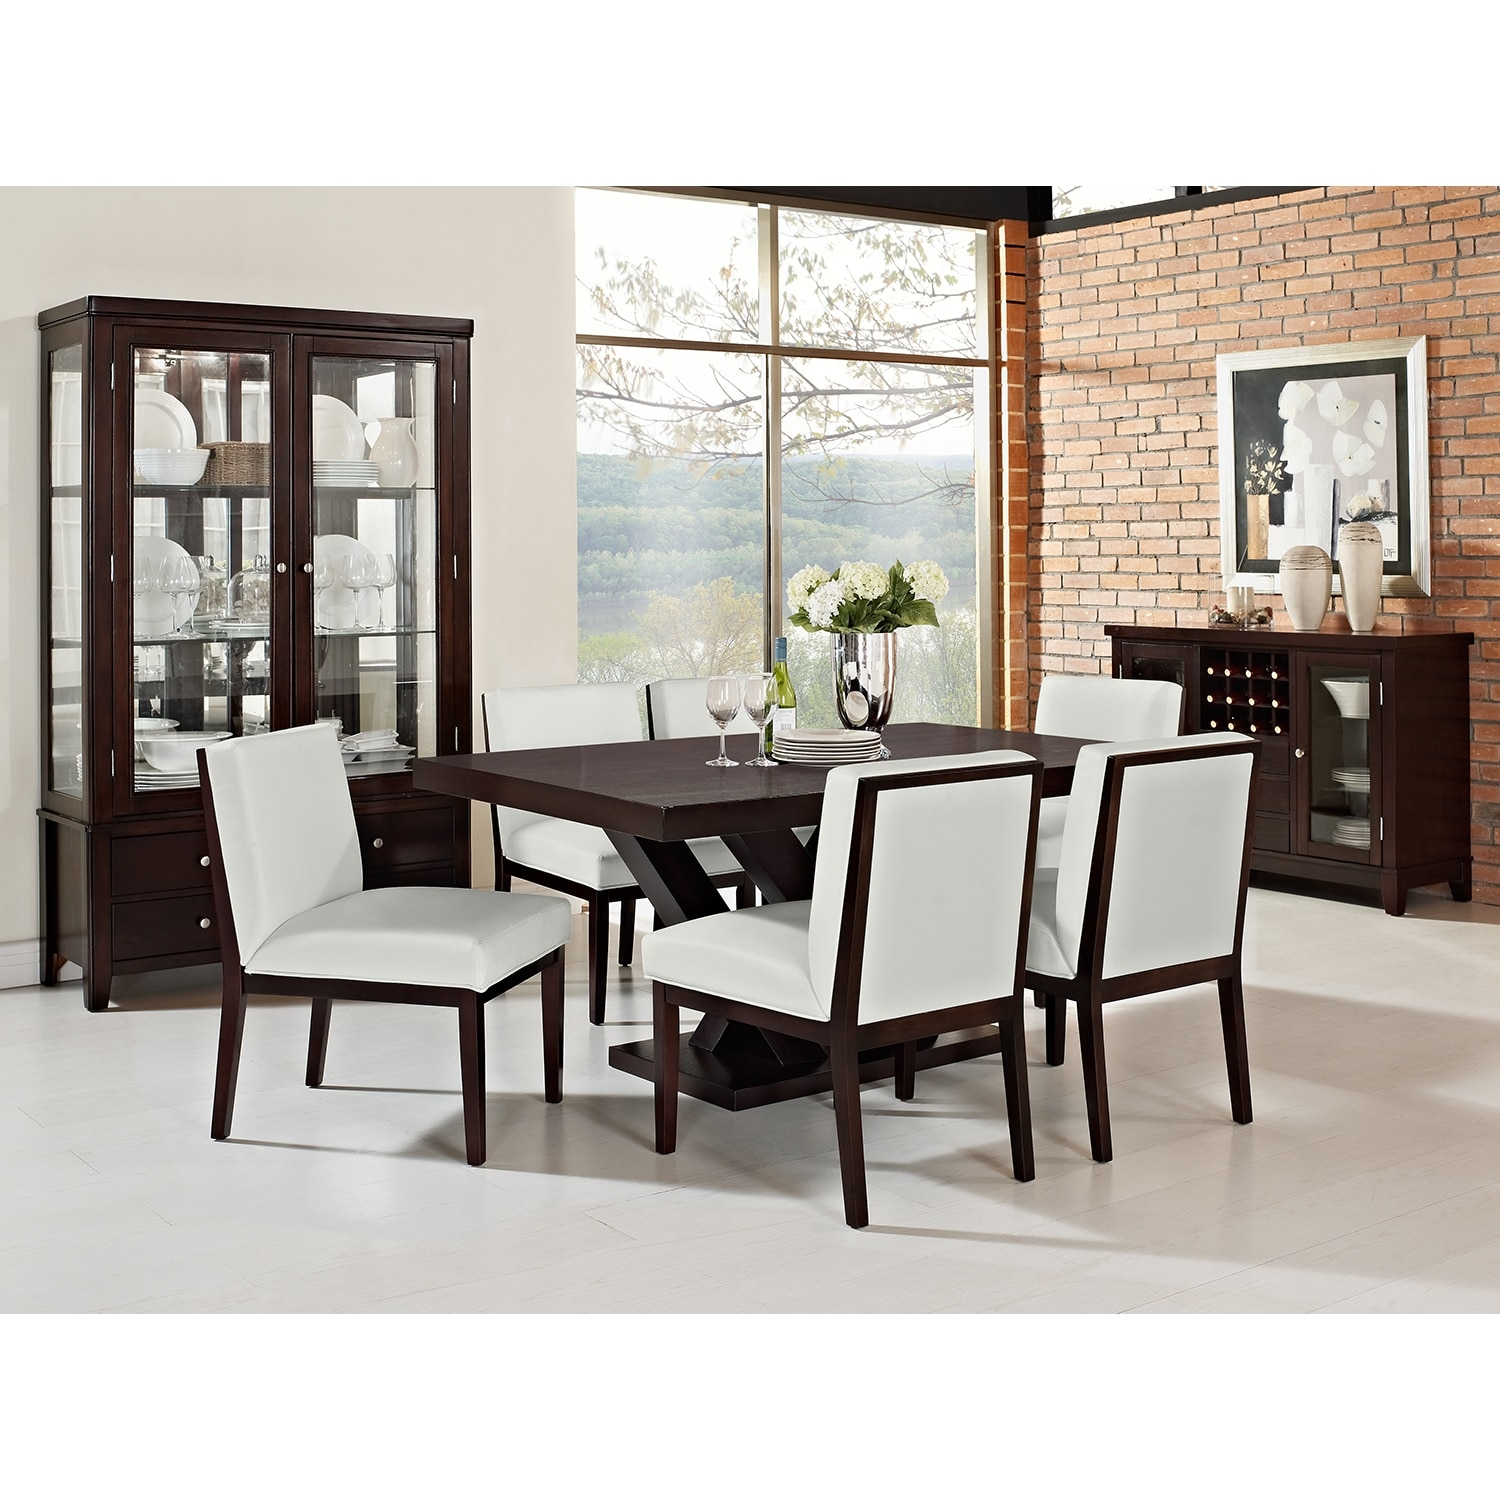 dining room furniture tempest chair